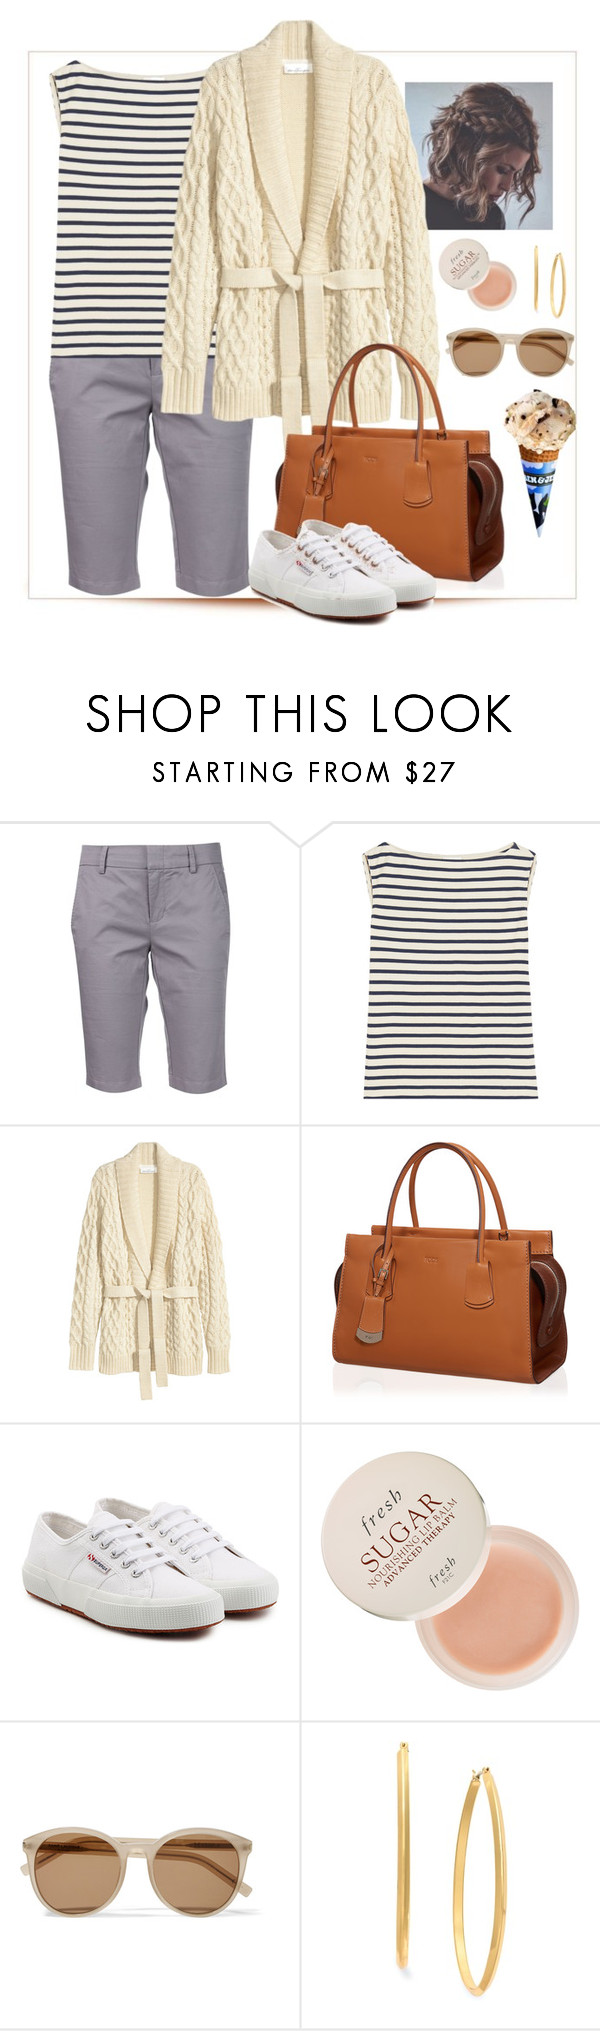 """Michigan vacation"" by jrowe1969 ❤ liked on Polyvore featuring Vince, Yves Saint Laurent, H&M, Tod's, Superga, Fresh and Charter Club"